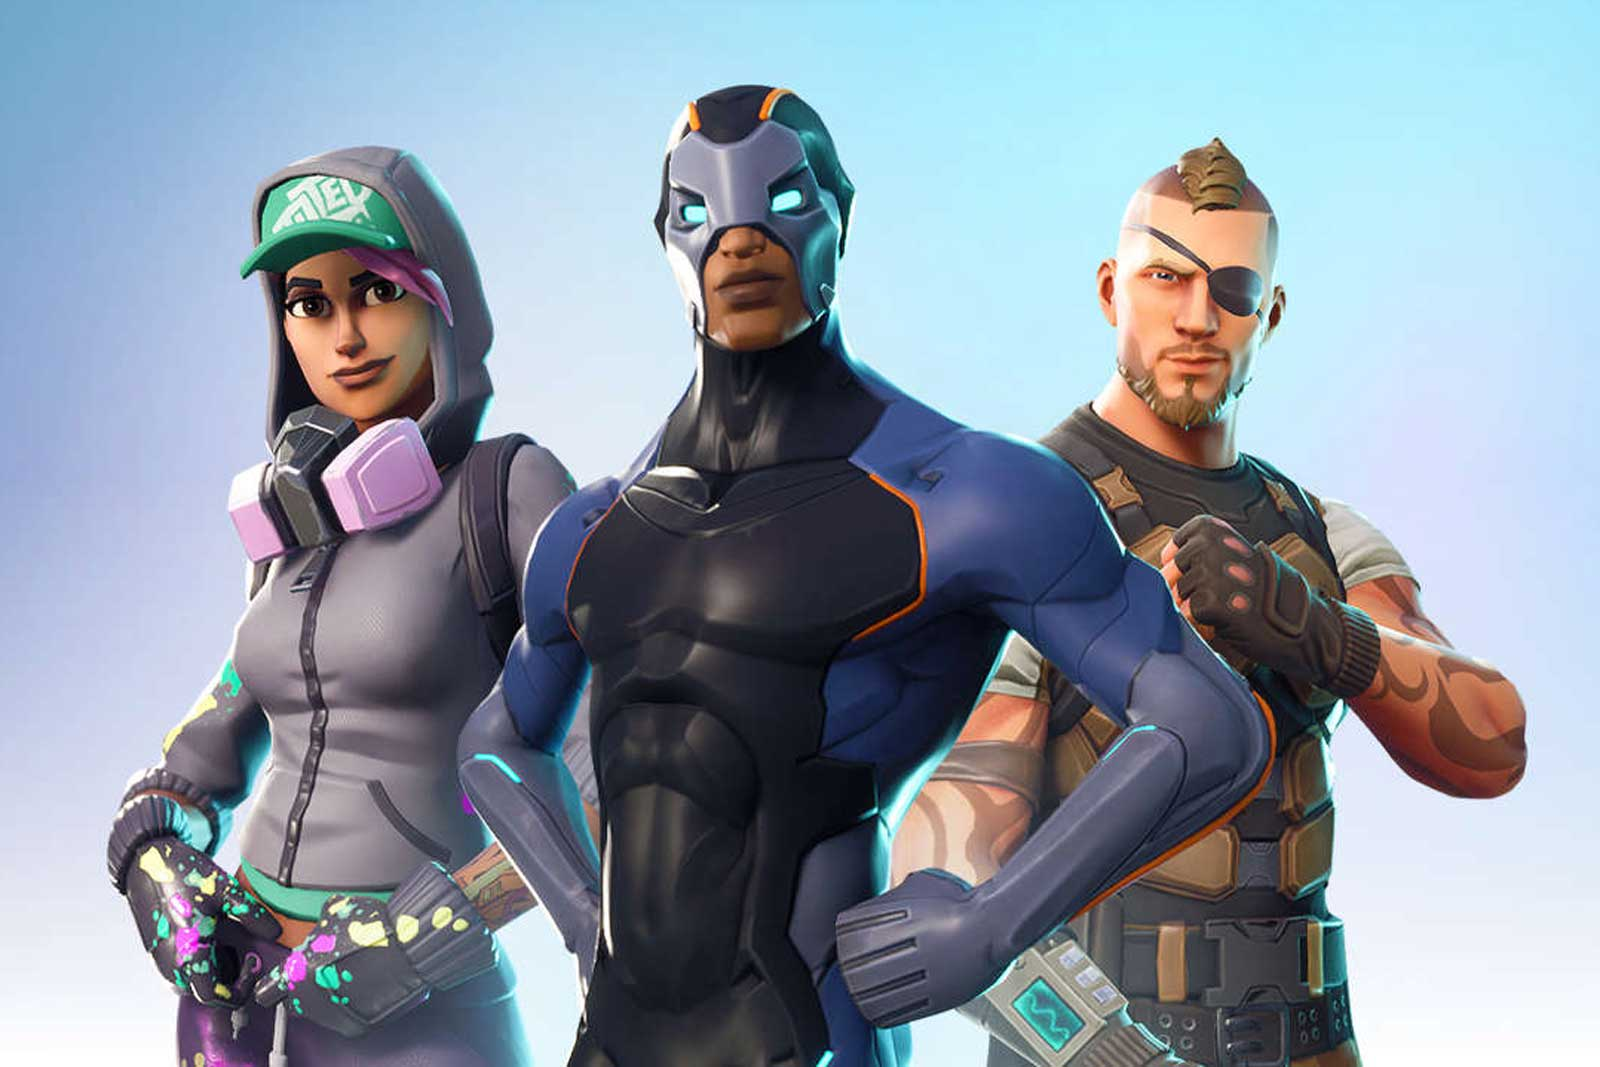 Fortnite' for Switch doesn't support PlayStation-linked accounts